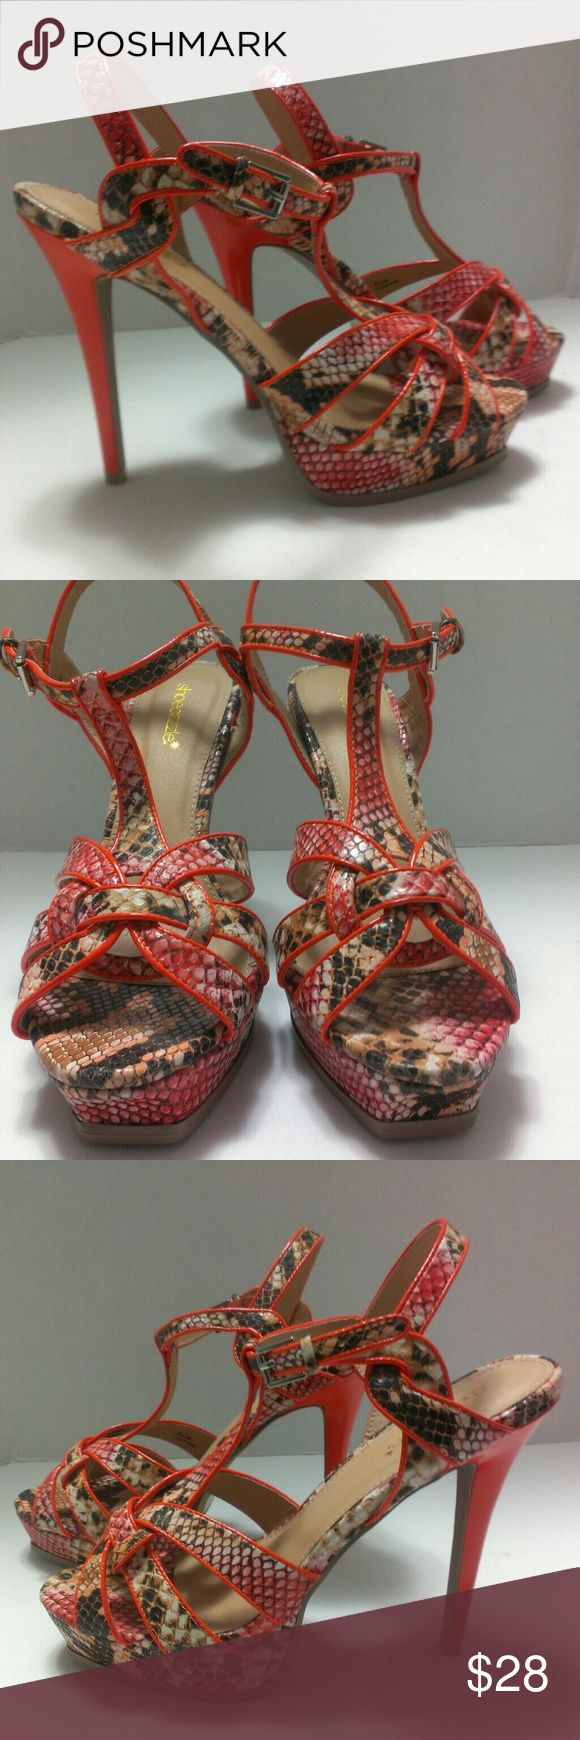 Shoe Dazzle Animal Print High Heeled Sandals Sz 11 These adorable sandals are in like new condition.    My home a smoke-free and pet-free.  Check out the other items in my closet to bundle for your discount.  I consider all offers.  Happy POSHING! Shoe Dazzle Shoes Heels